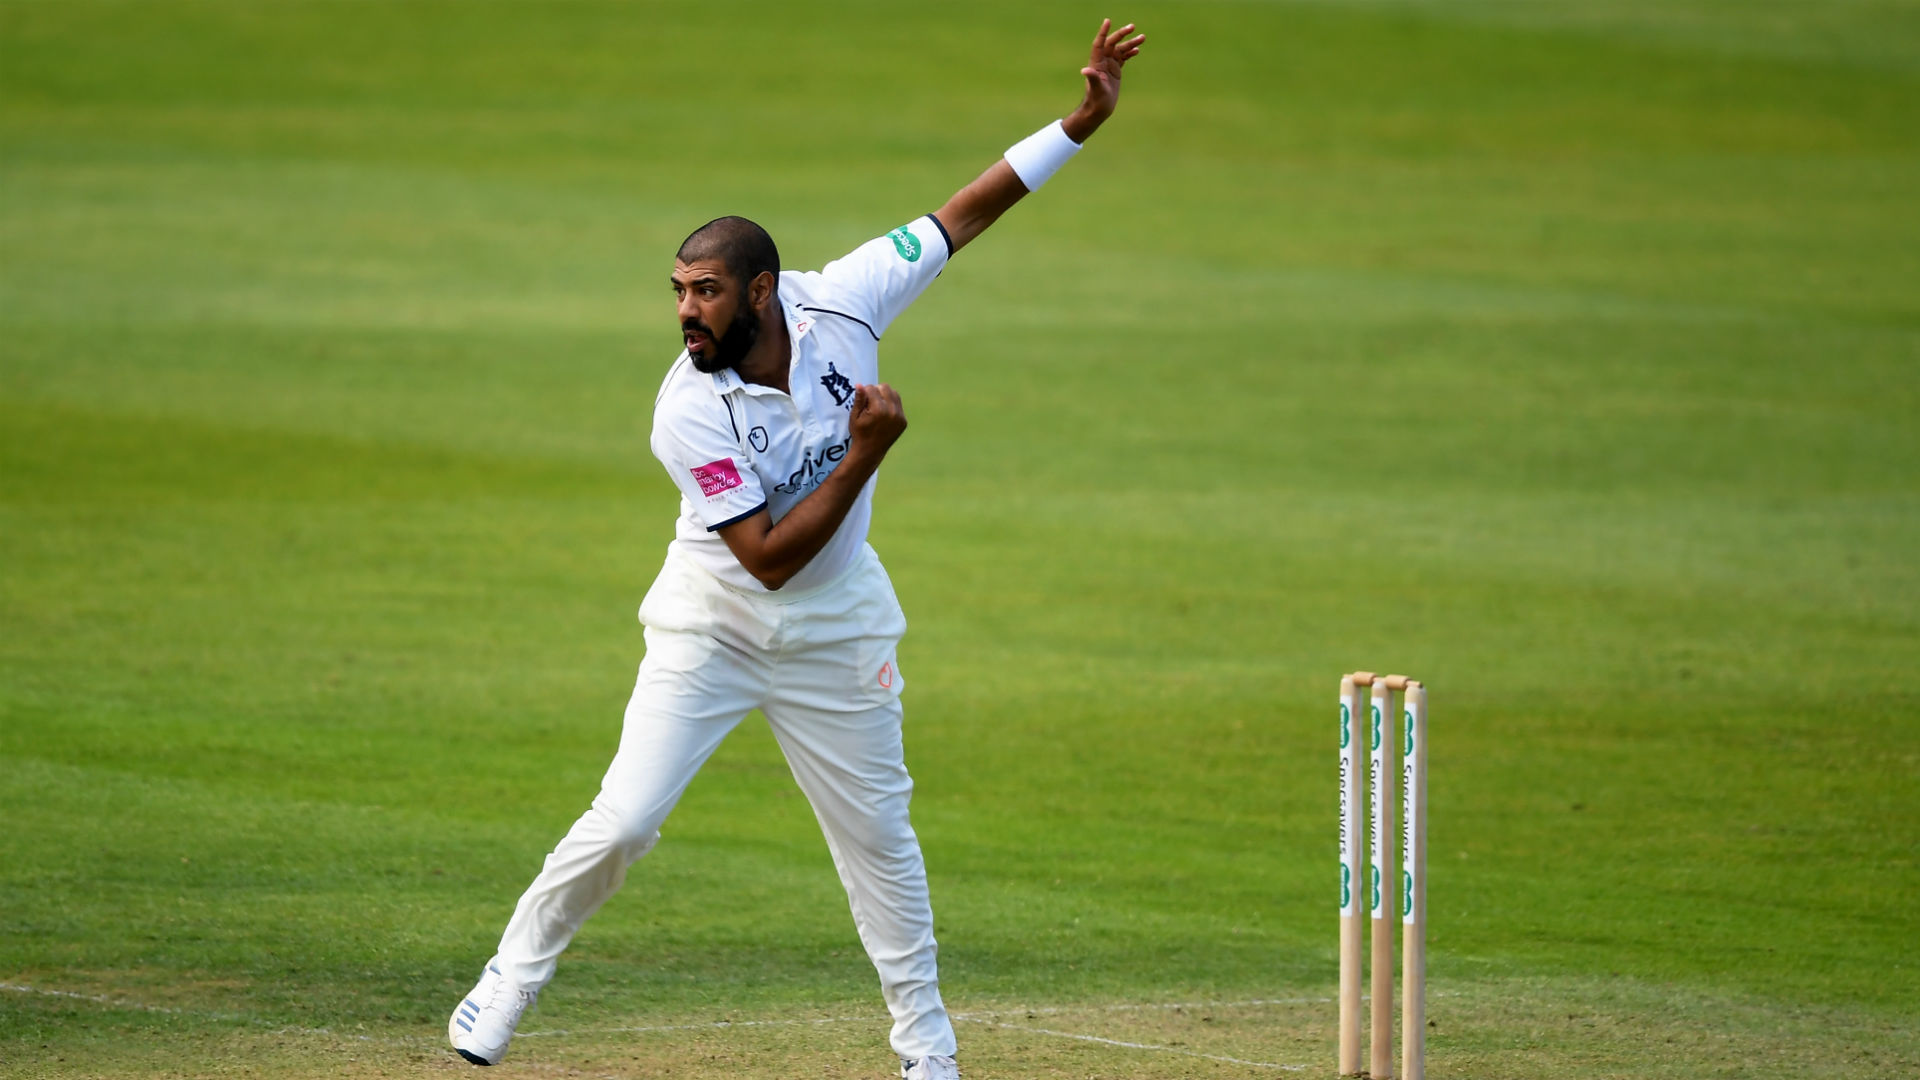 Evergreen spinner Jeetan Patel will be plotting the downfall of his compatriots when England take on New Zealand in the shortest format.